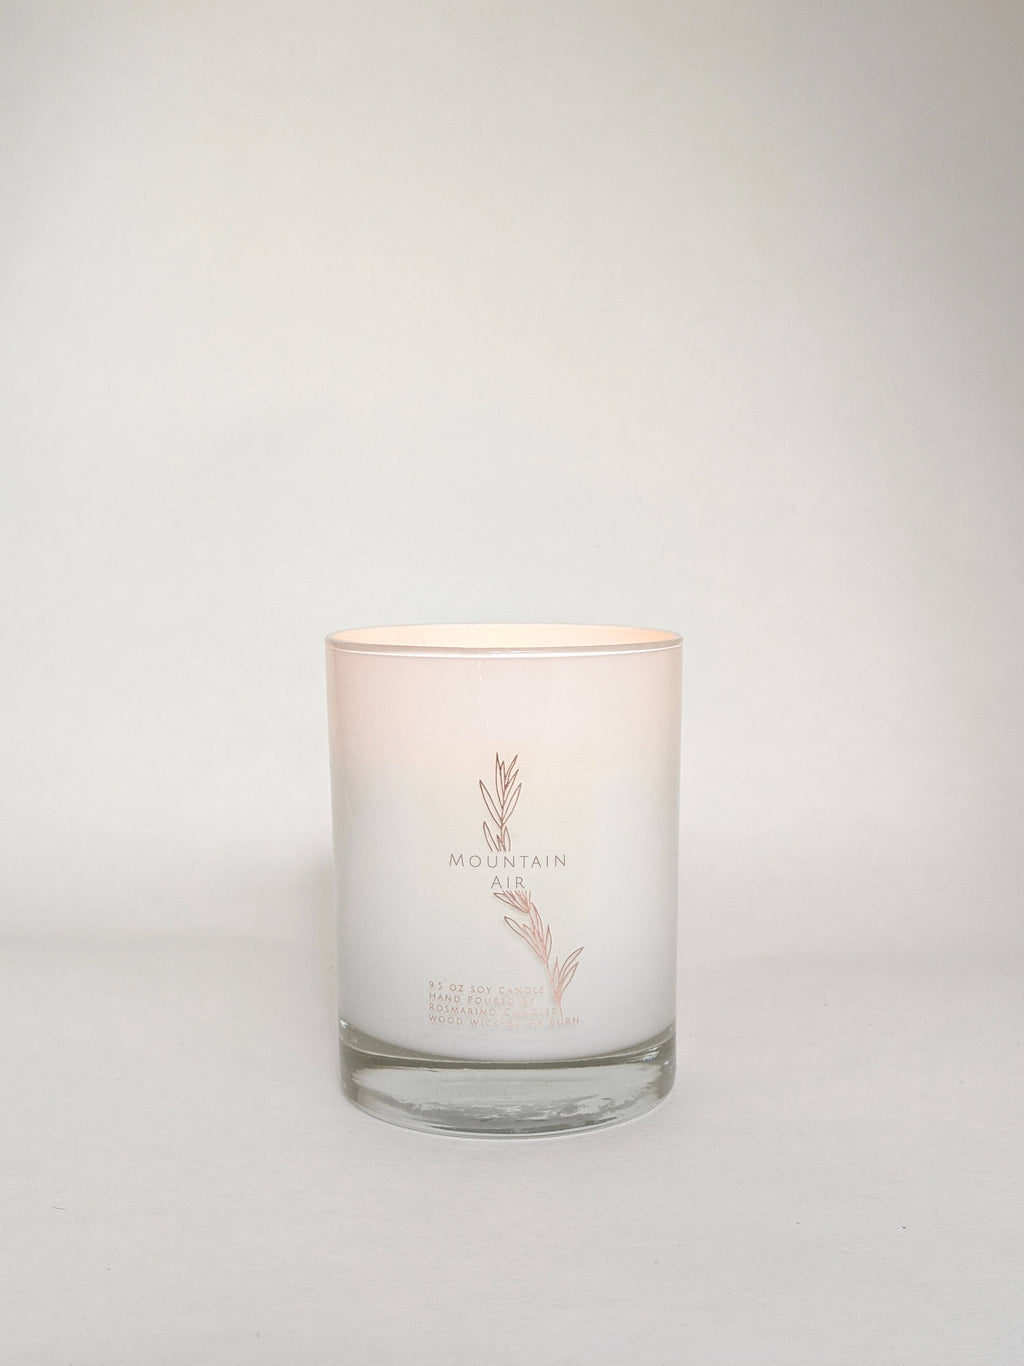 Mountain Air 9.5 oz Wood Wick Candle